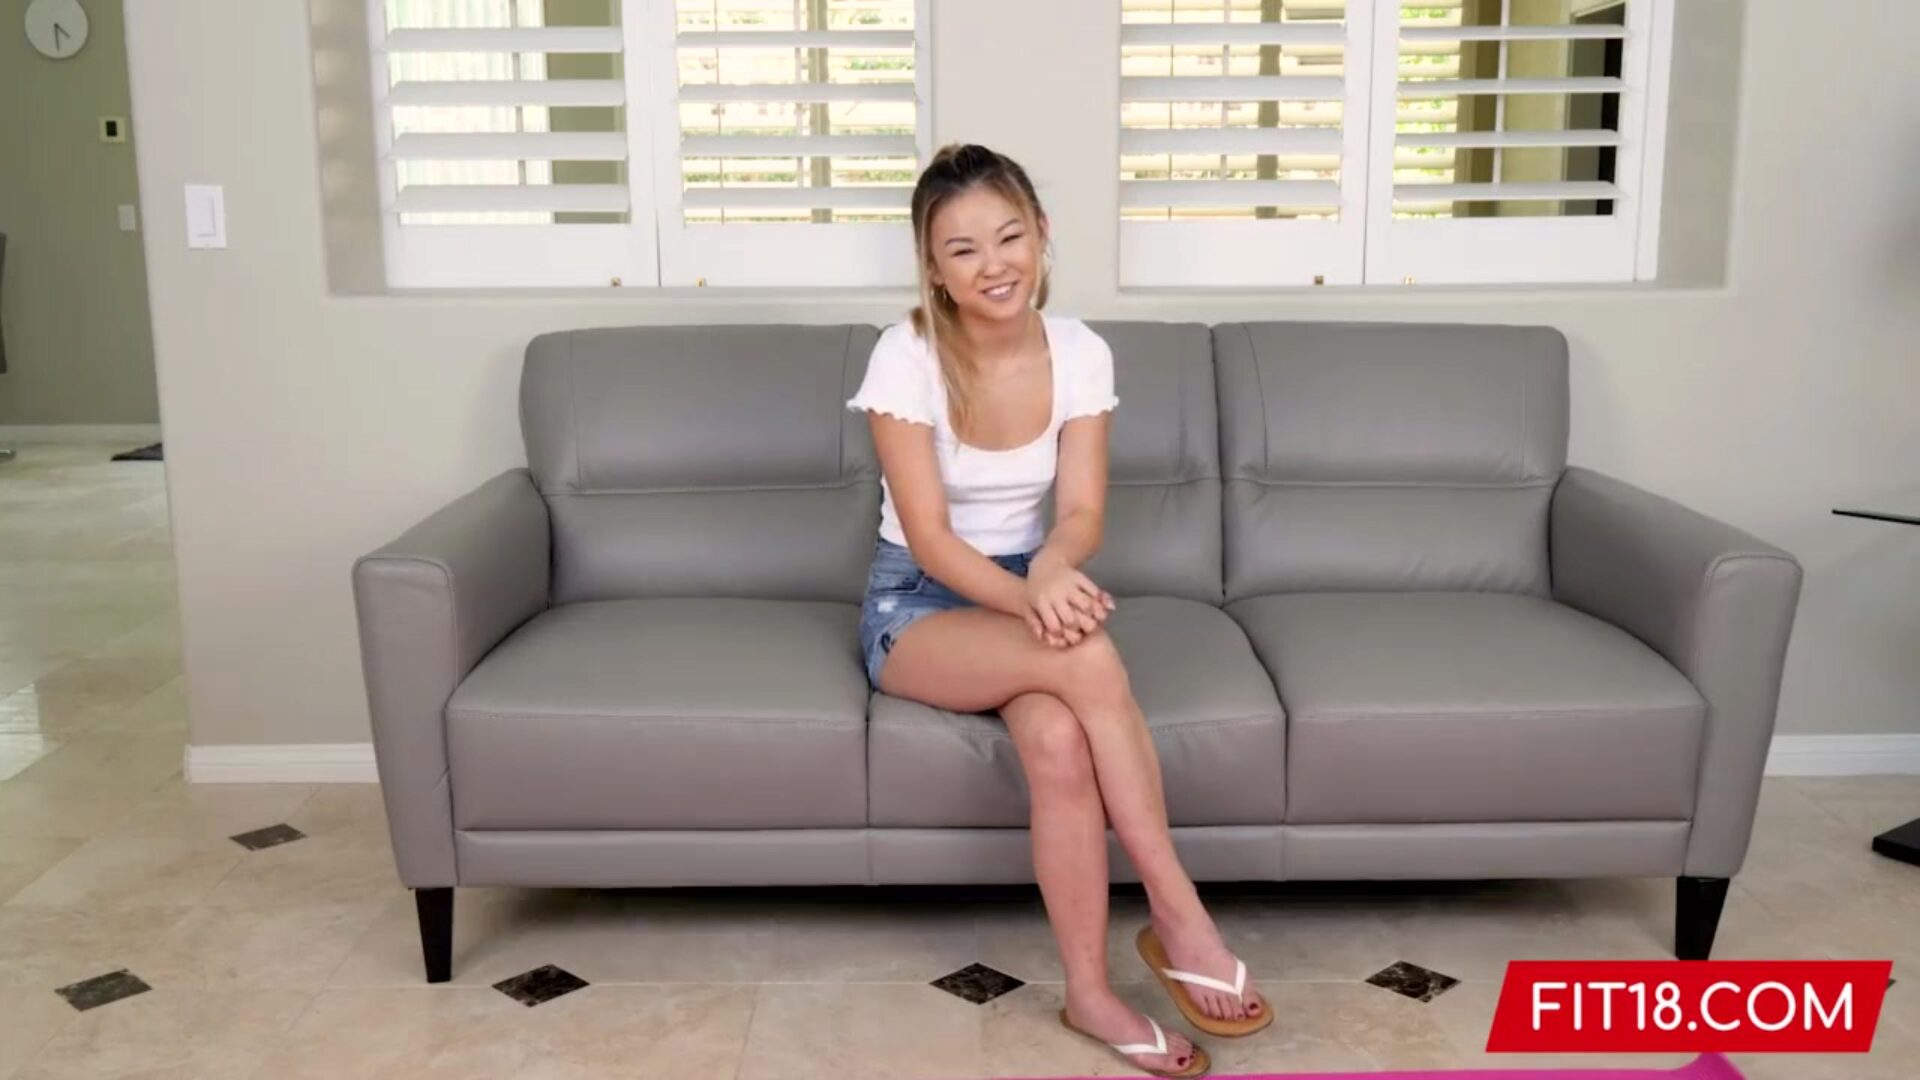 FIT18 - Lulu Chu - Casting Tiny Chinese Girl Under five Feet Tall